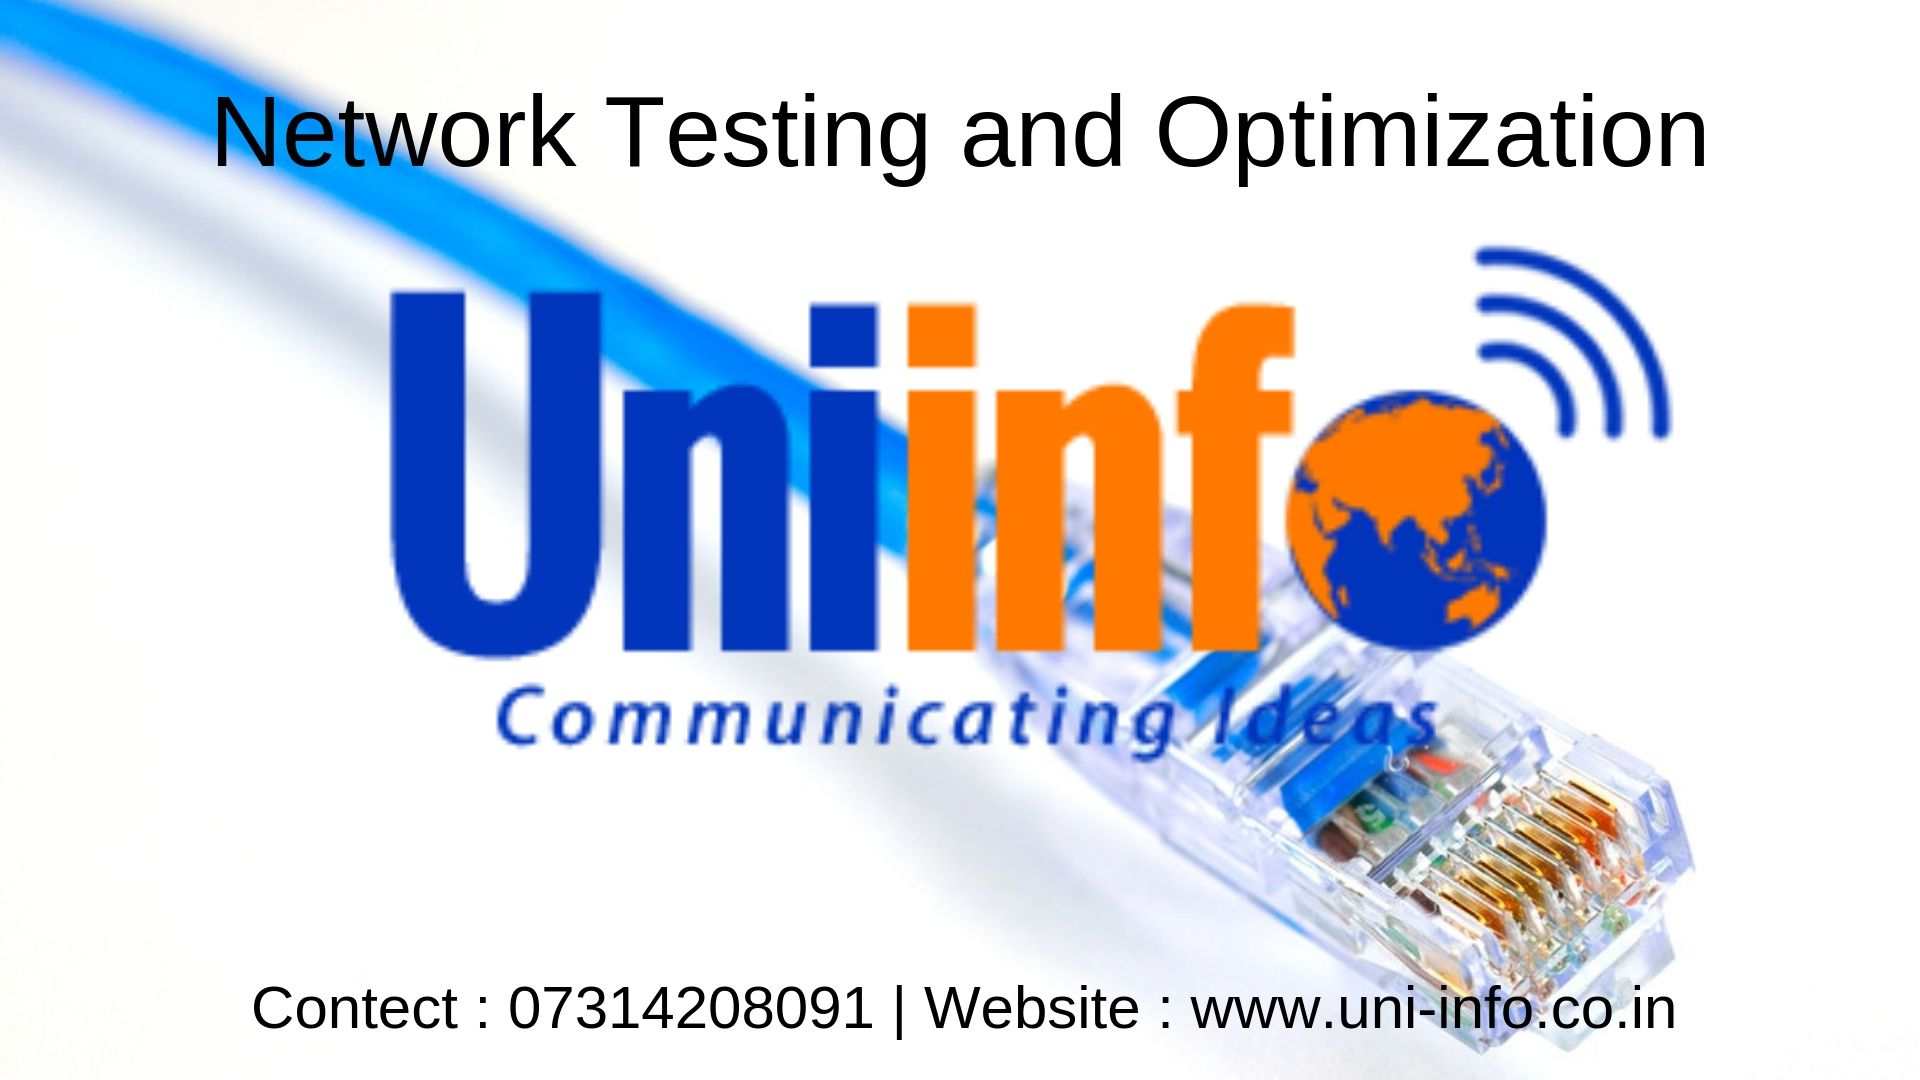 Uniinfo is the Best #TelecomCompany in India  We provide the best